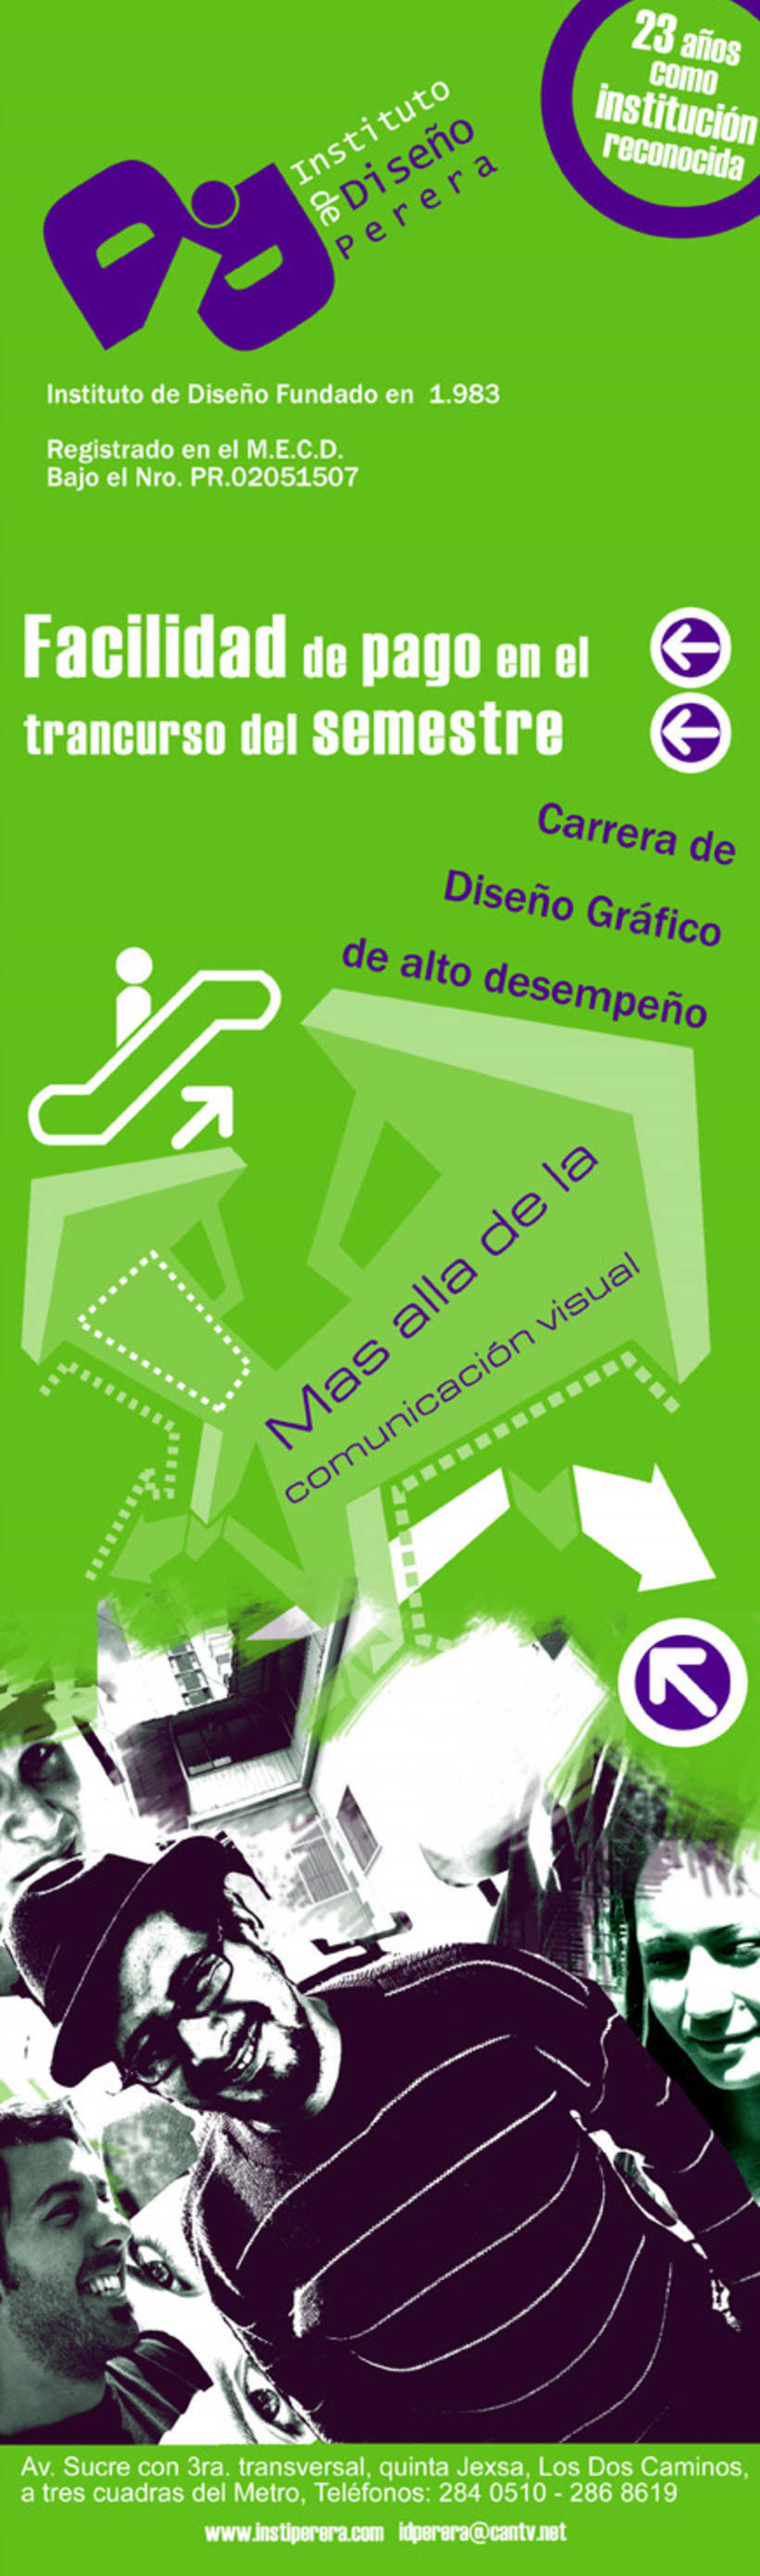 Carteles, afiches, posters... 14